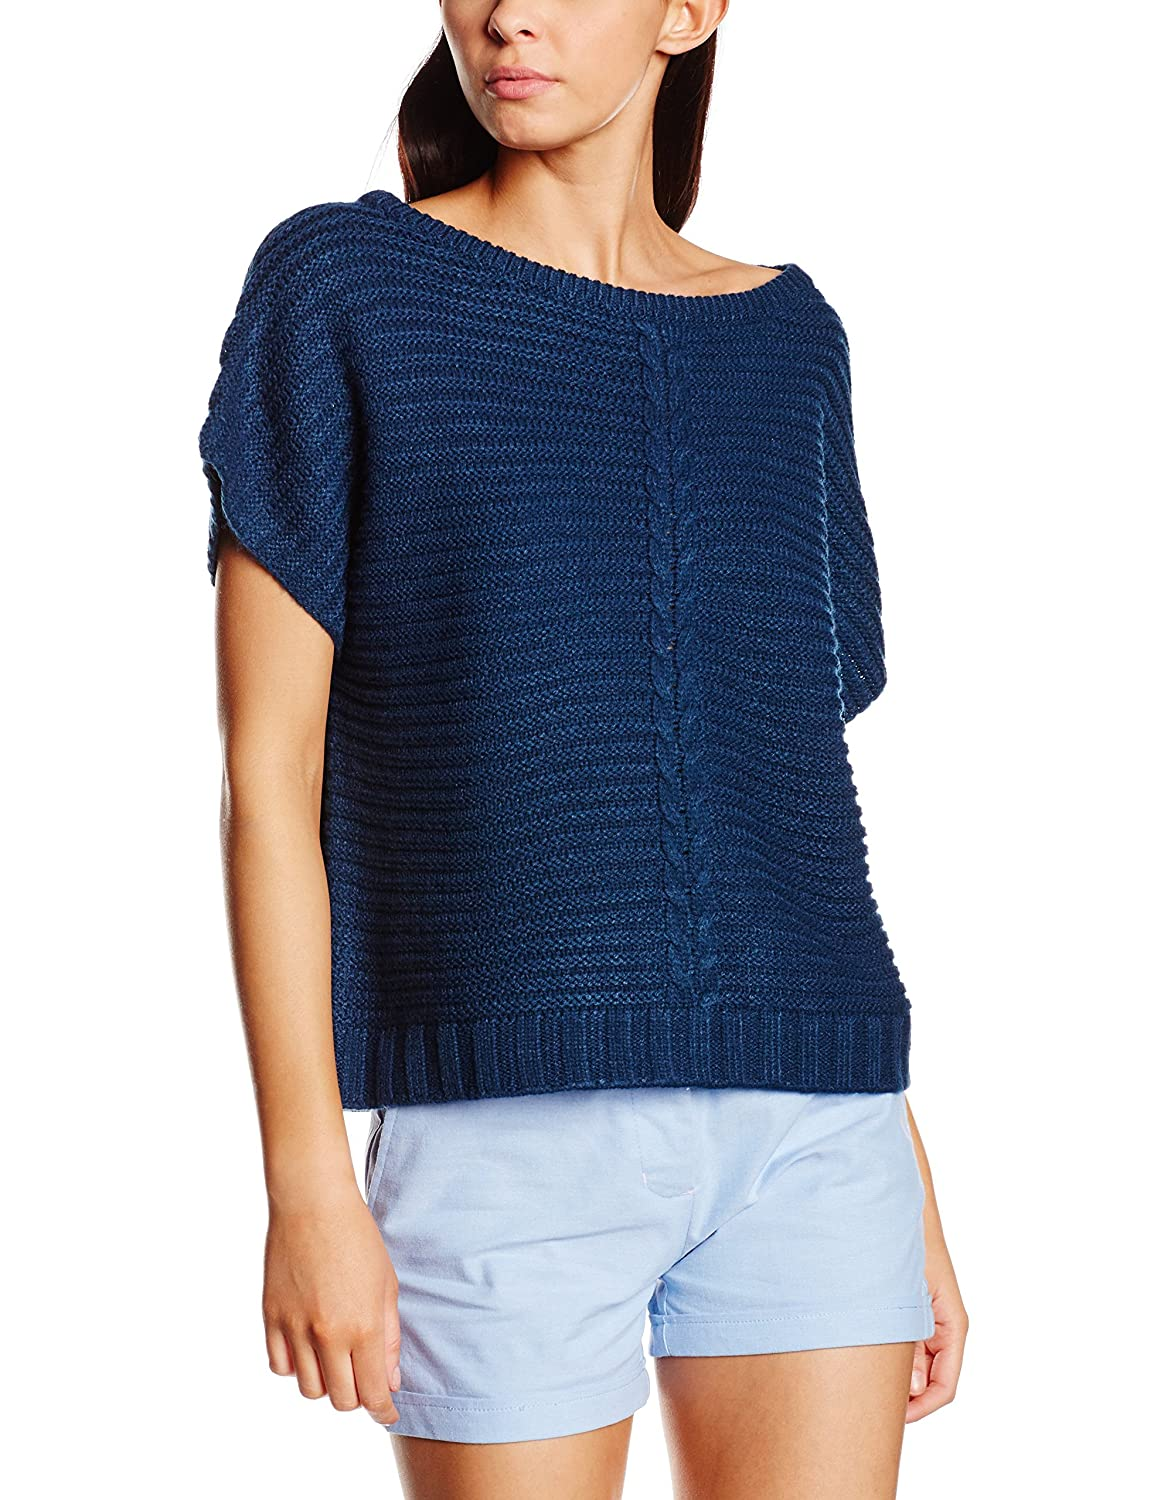 Pepaloves Sweater Cable Navy, Jersey para Mujer